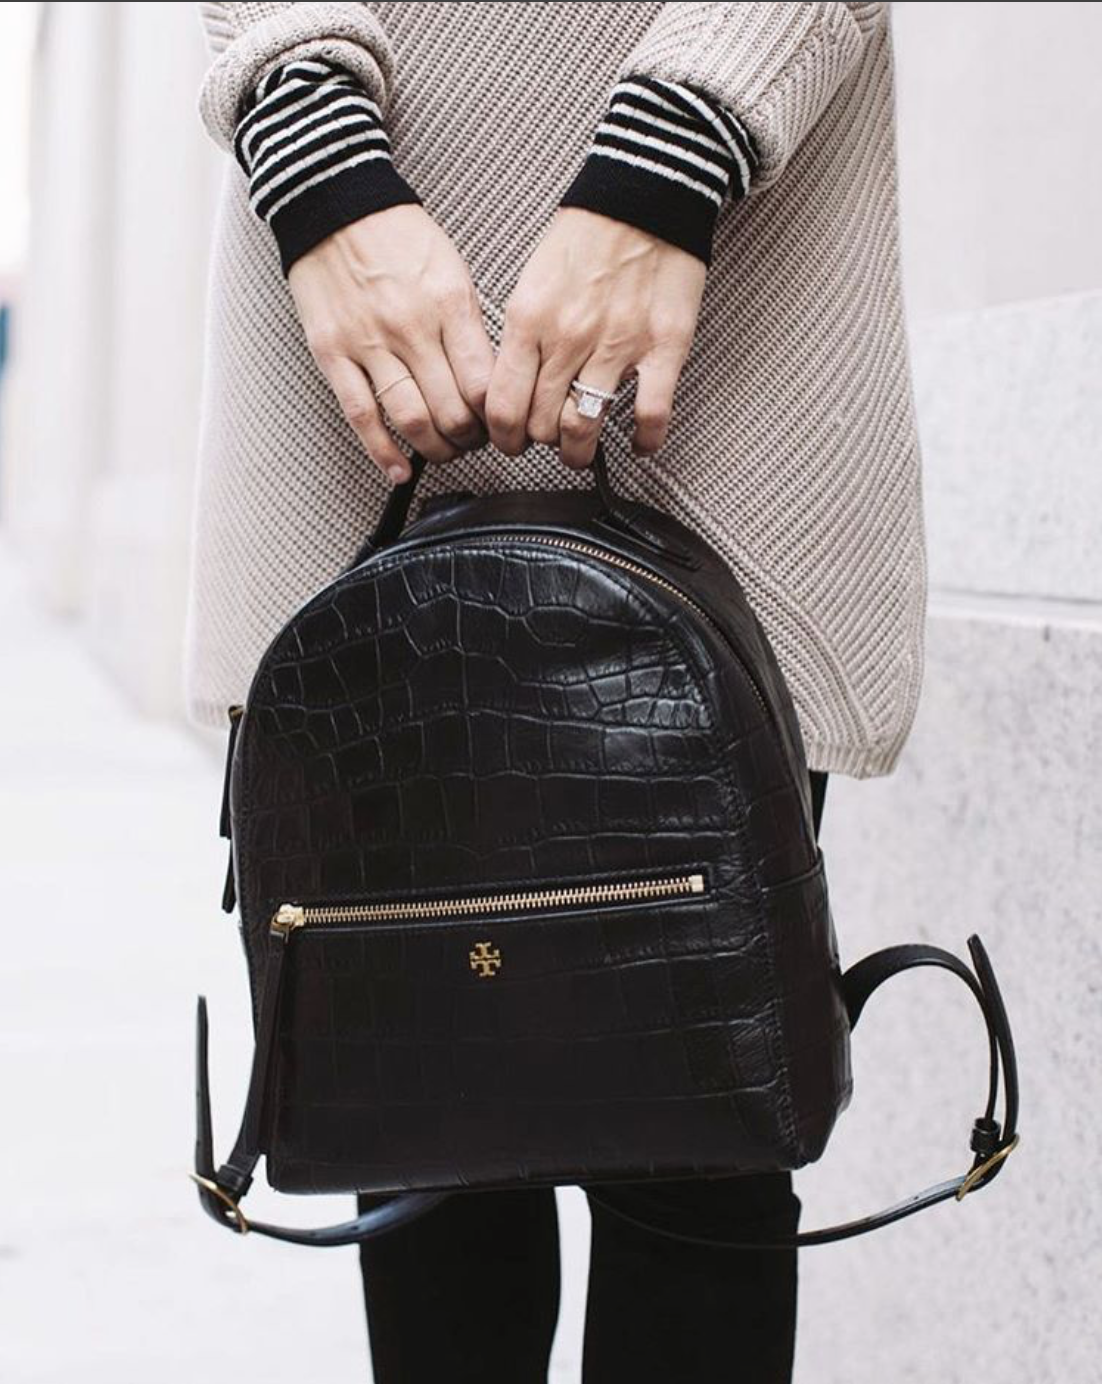 3533d28742 Jacey Duprie of Damsel in Dior toting the Tory Burch Croc-Embossed Mini  Backpack